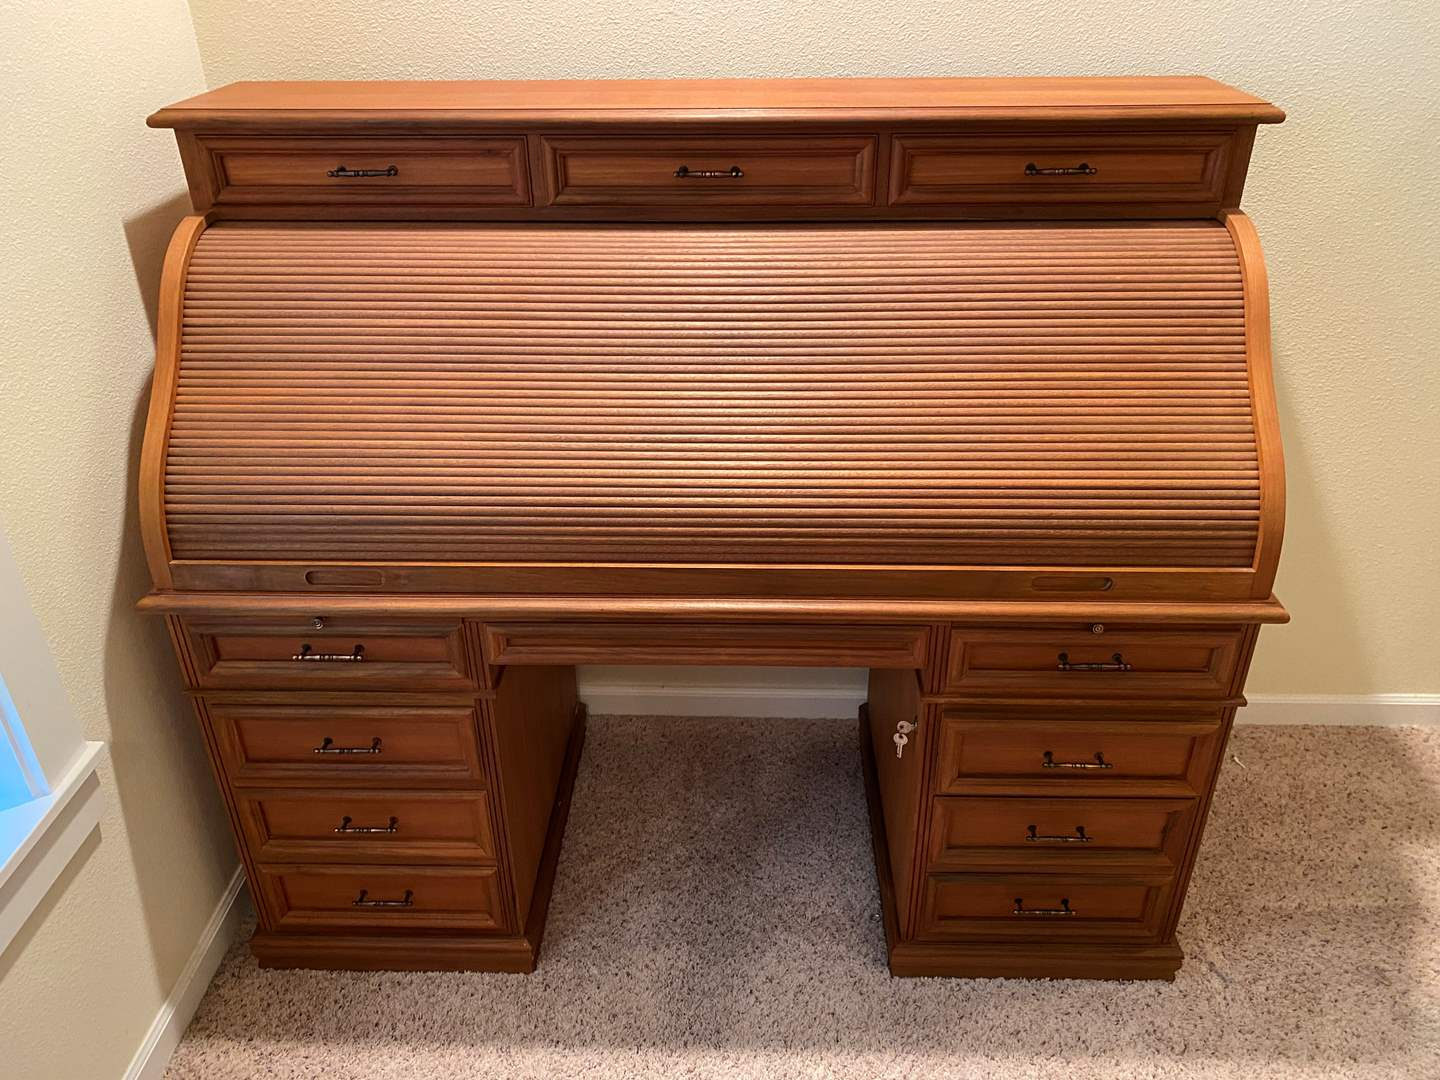 Lot # 169 - Very Nice Solid Wood Roll Top Desk w/ Dovetail Drawers (main image)